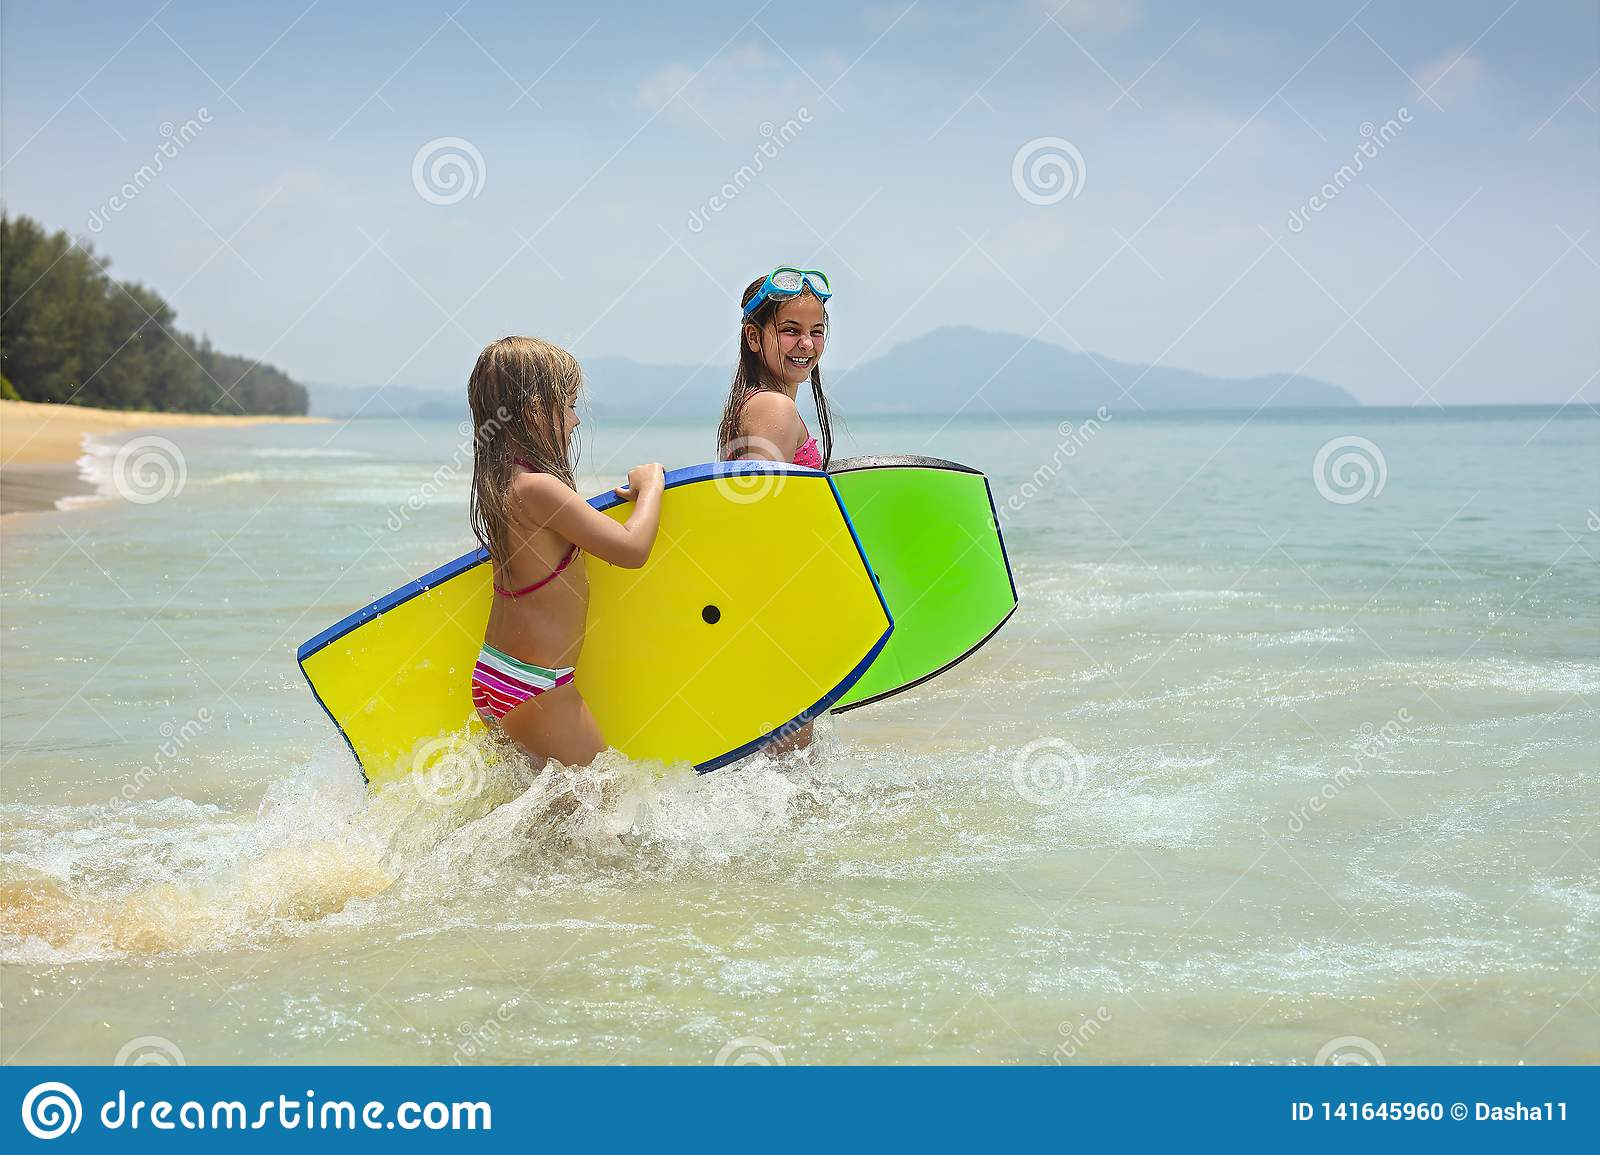 Little girls with surfing boards playing on tropical ocean beach. Summer water fun for surfer kids